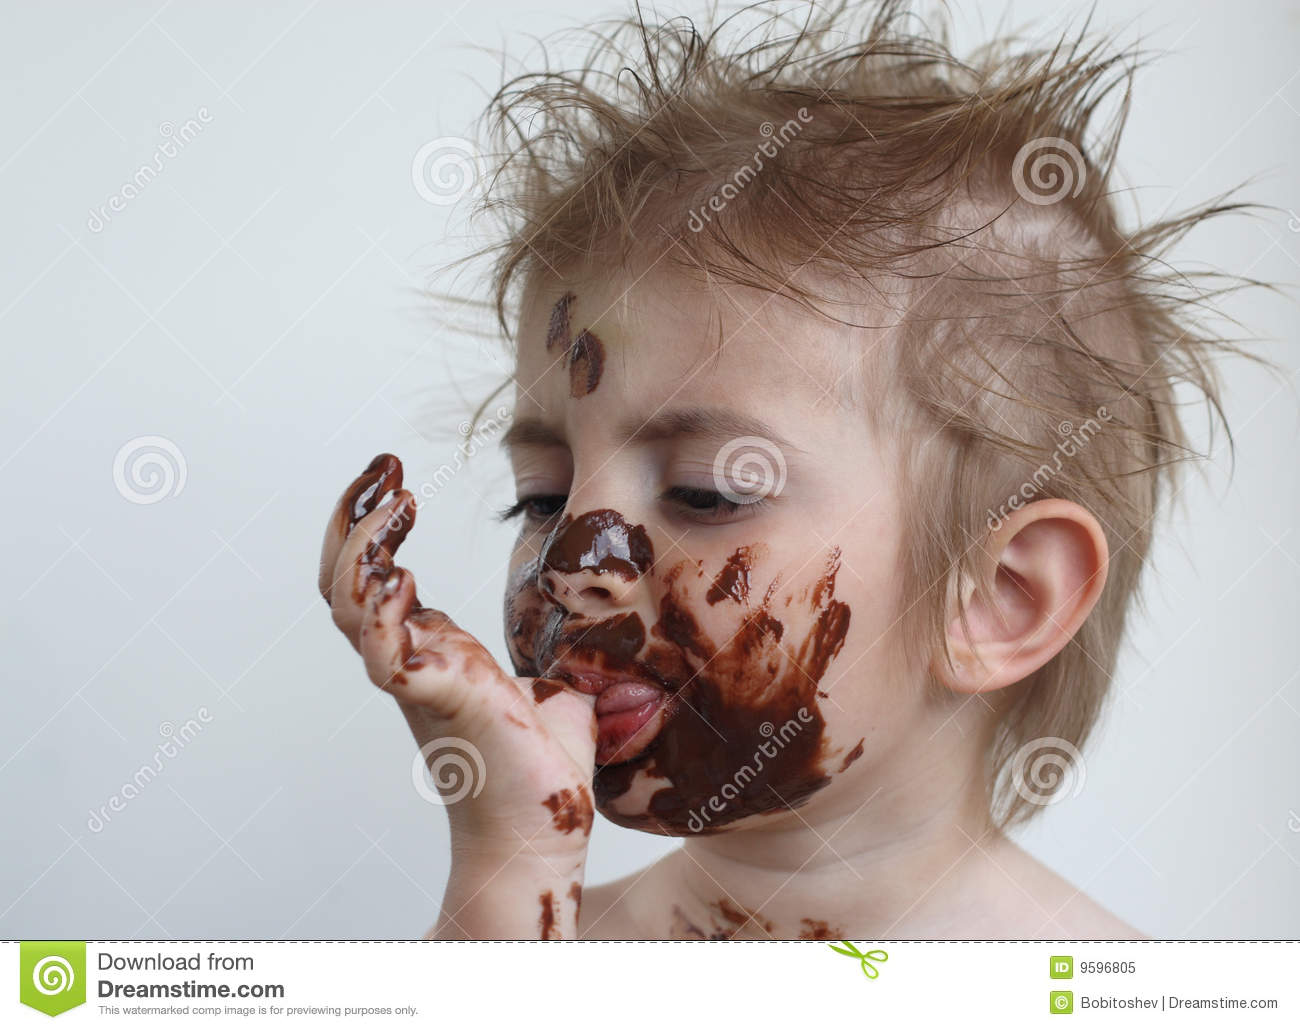 Child Eating Chocolate Royalty Free Stock Photo - Image: 9596805